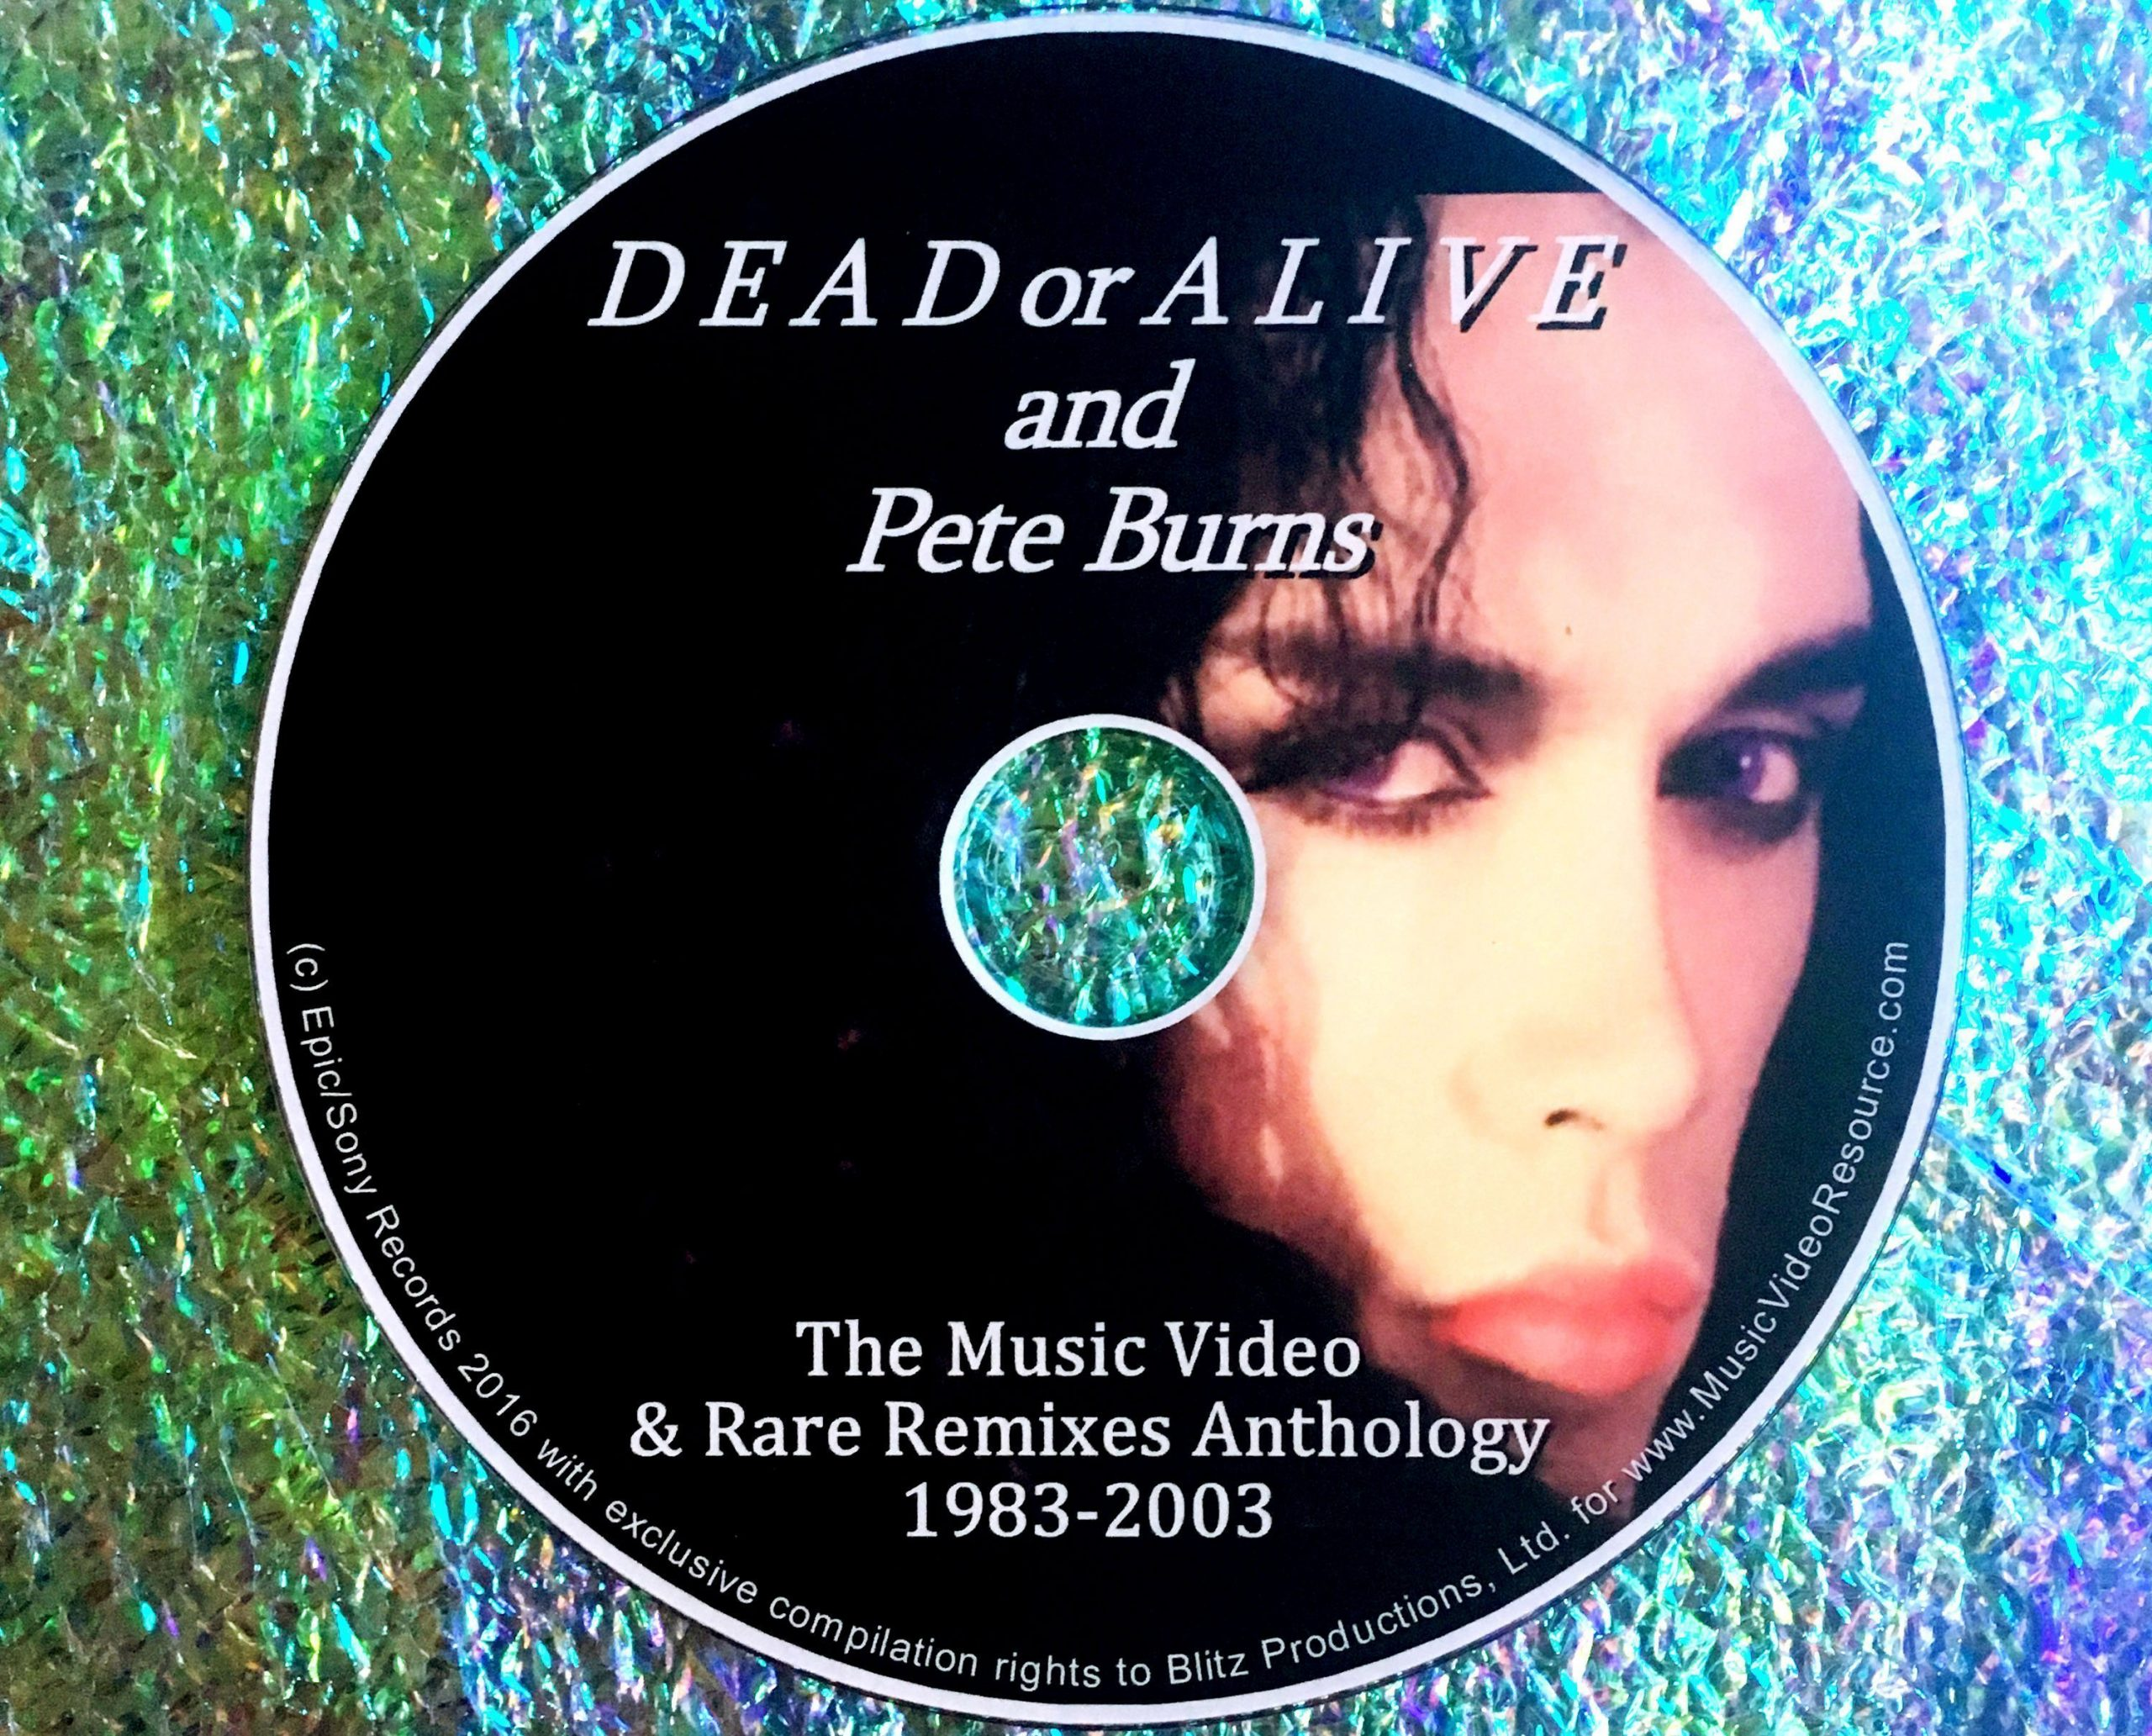 DEAD OR ALIVE / PETE BURNS MUSIC VIDEO & RARE REMIXES ANTHOLOGY 1983-2003 *21 MUSIC VIDEOS!!!* (Region 1 Playable on ALL USA and Canada DVD Players)